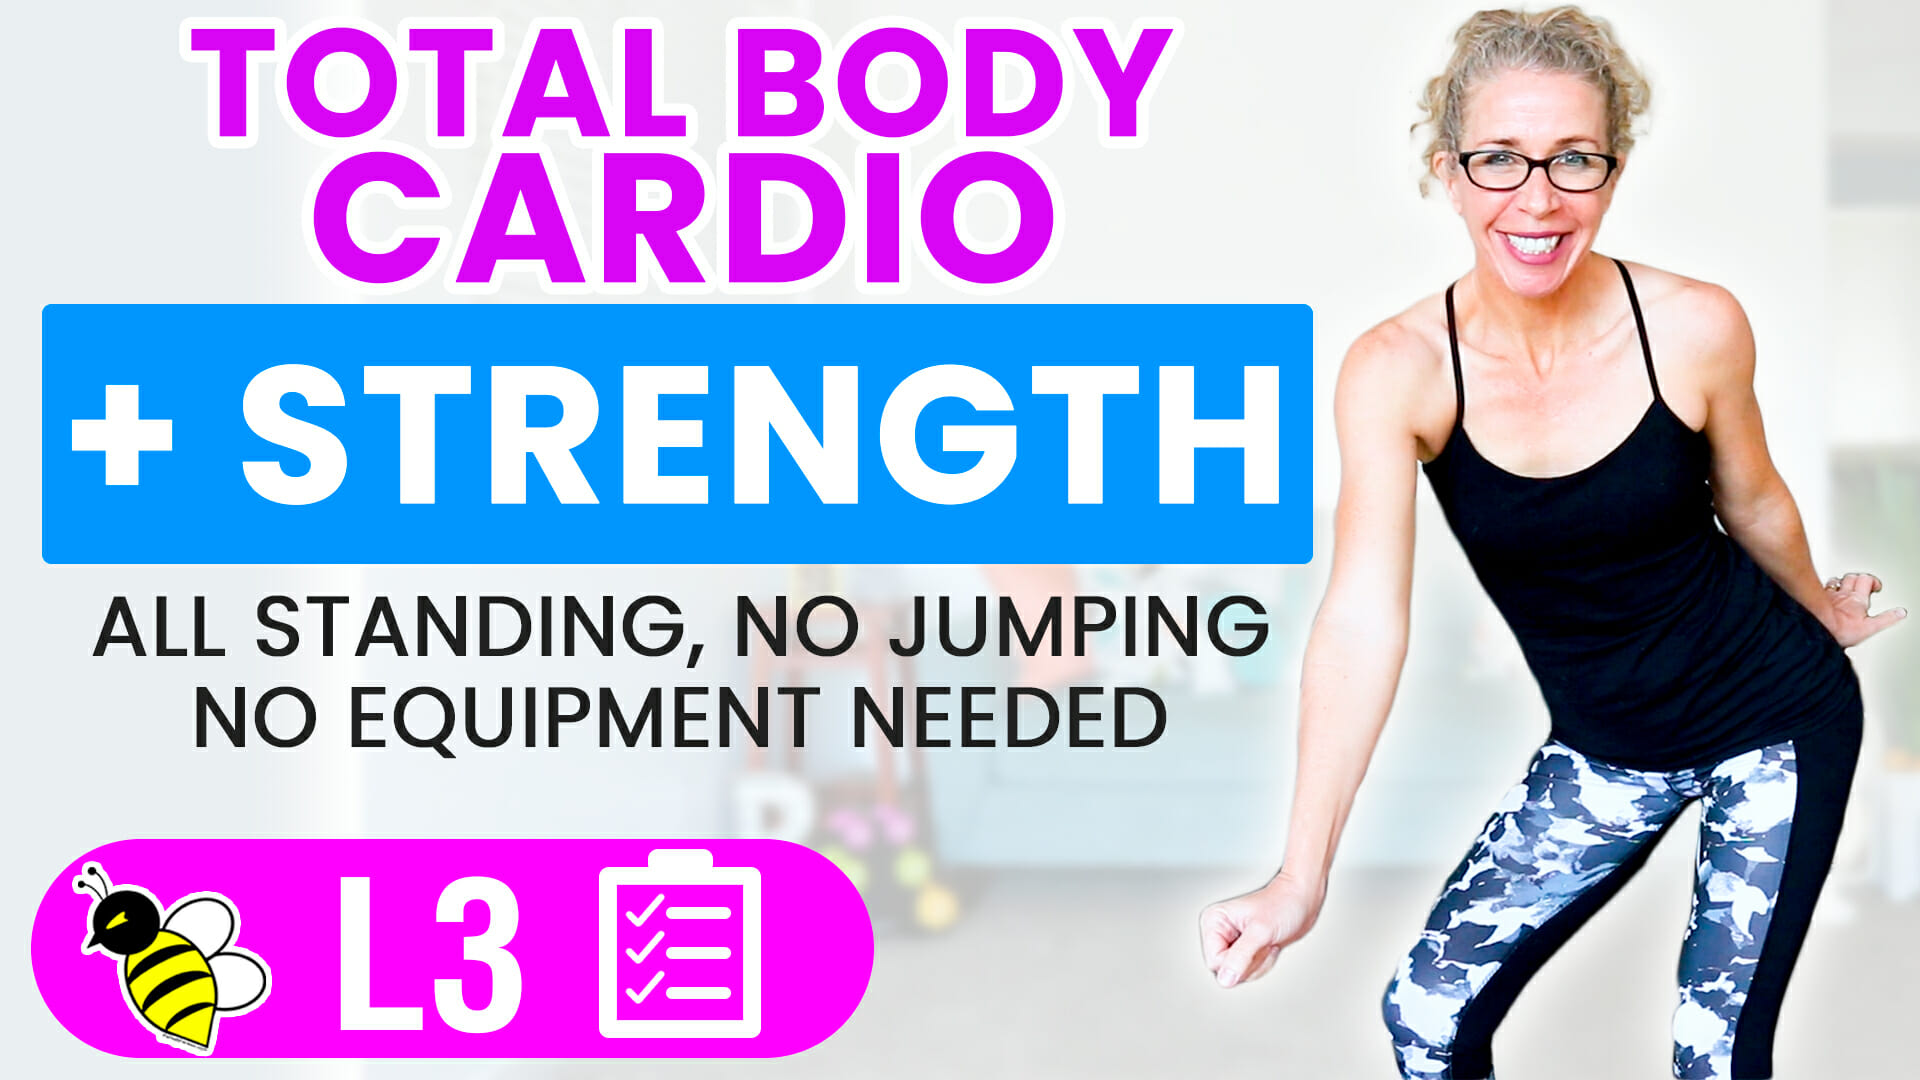 FUN 30 minute CARDIO + STRENGTH workout without equipment